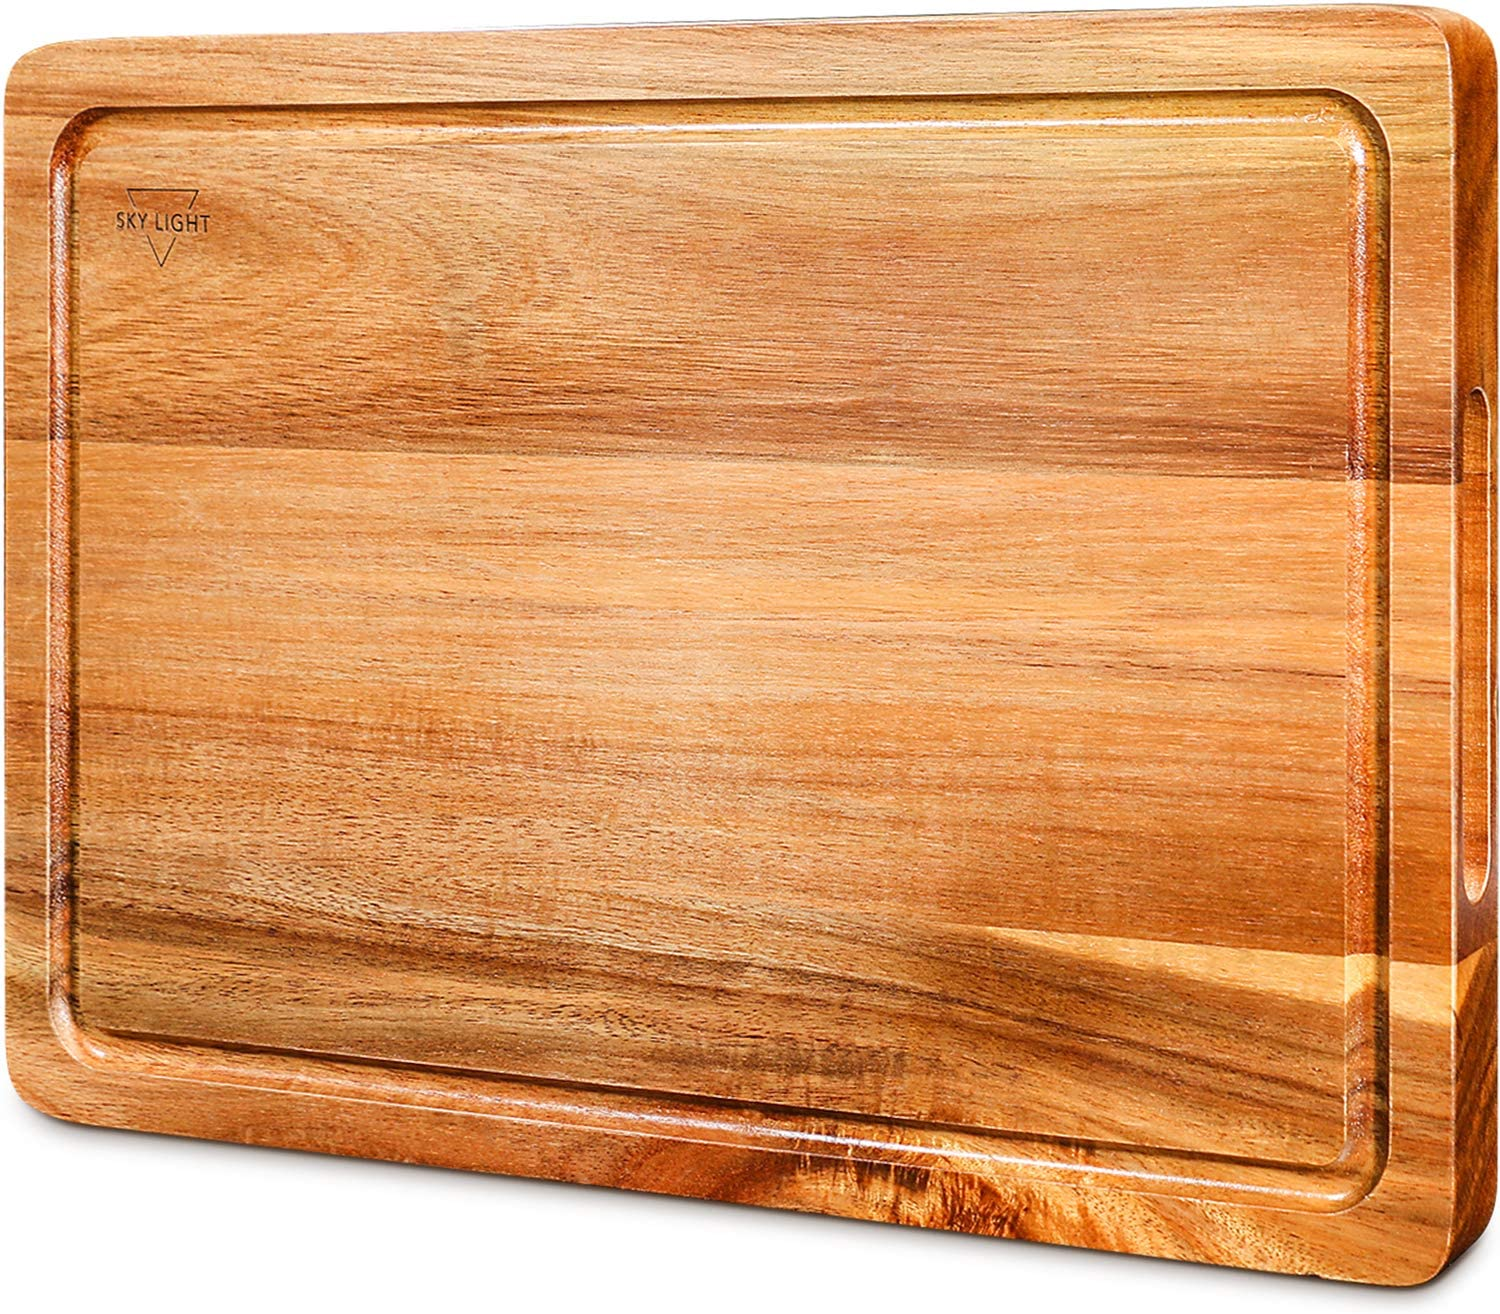 Amazon.com: SKY LIGHT Cutting Board, Wood Chopping Boards for ...